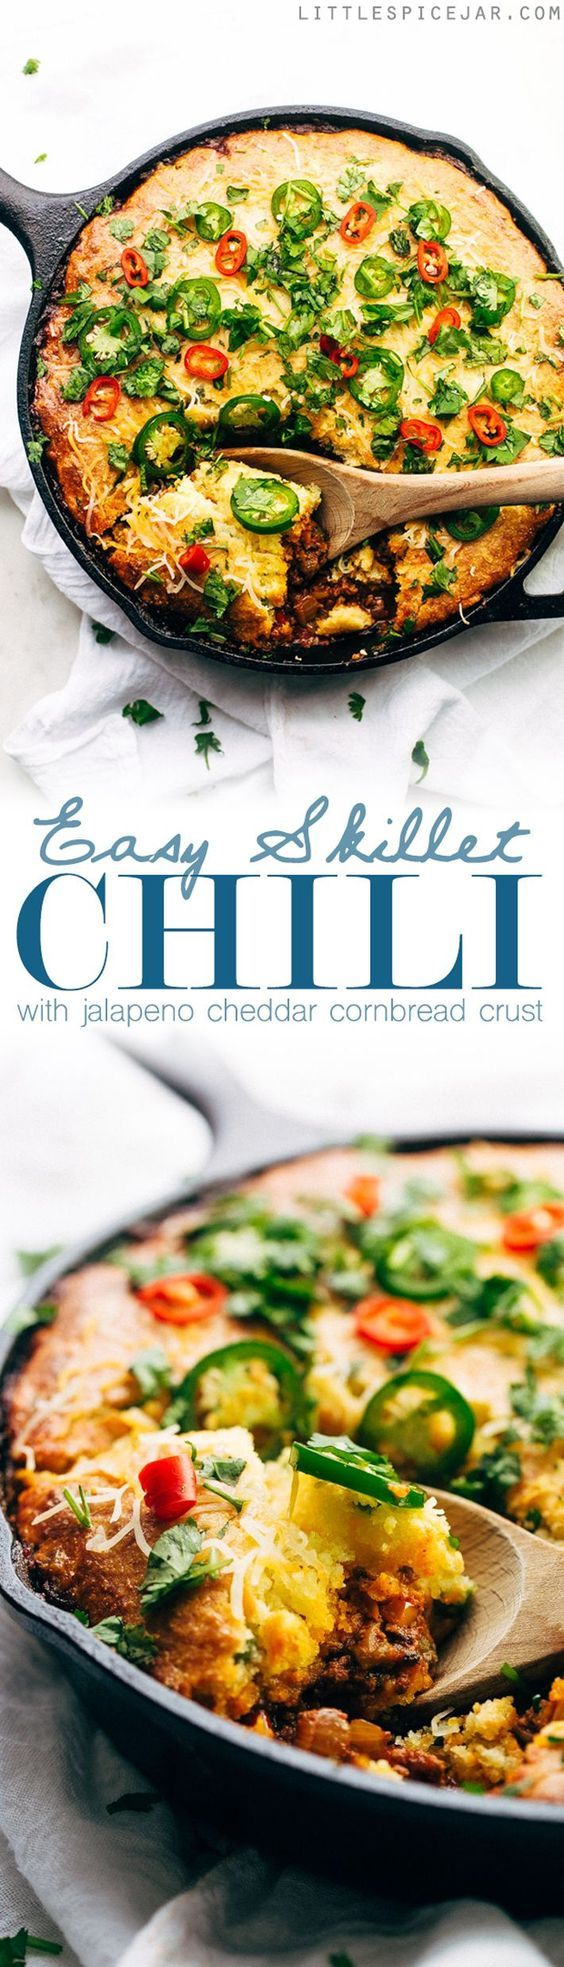 Skillet Chili with Jalapeño Cheddar Cornbread Crust - A simple chili and cornbread recipe that takes about an hour to make and had the cornbread baked right on top! #cornbread #chili #skilletchili #comfortfood | http://Littlespicejar.com